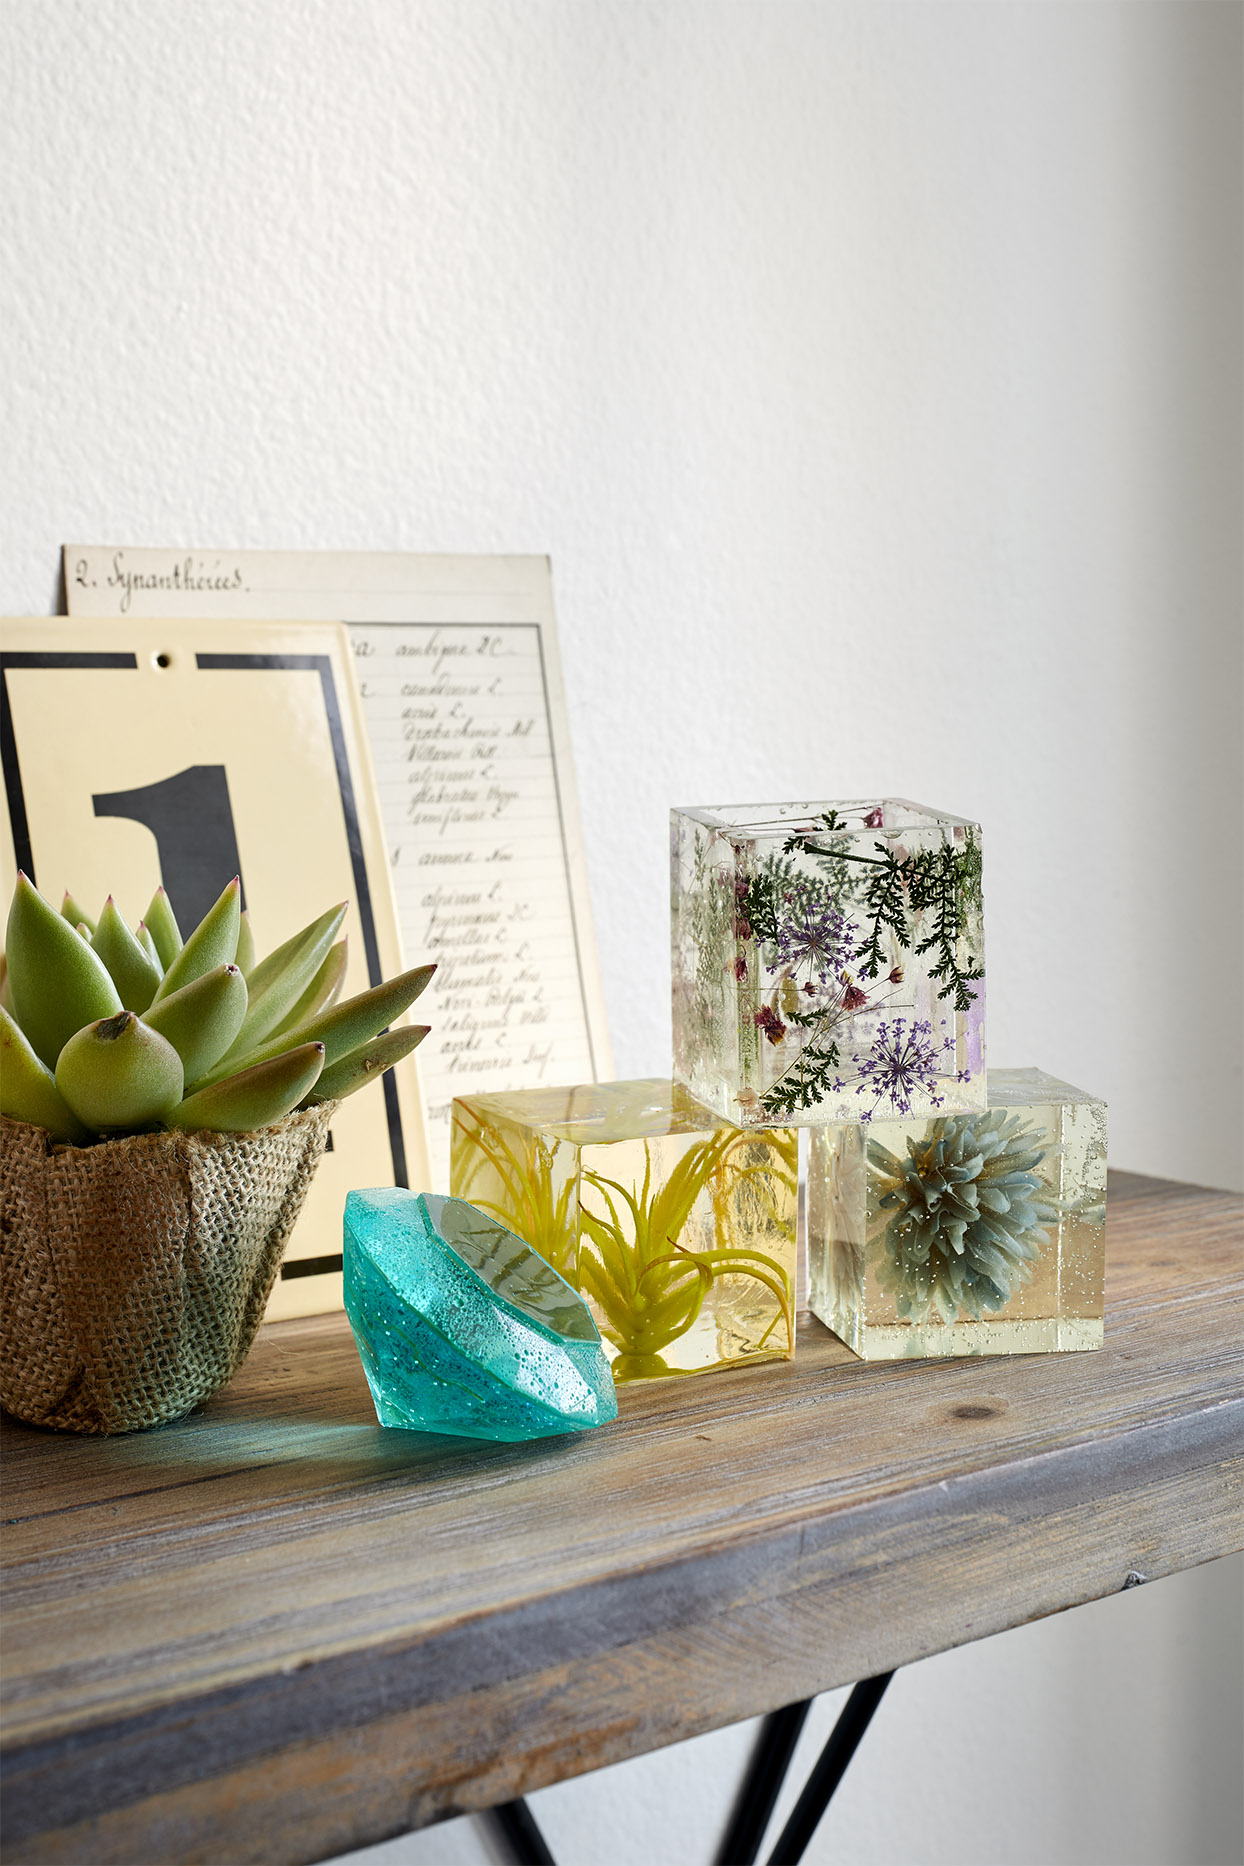 Resin cubes with plants in them